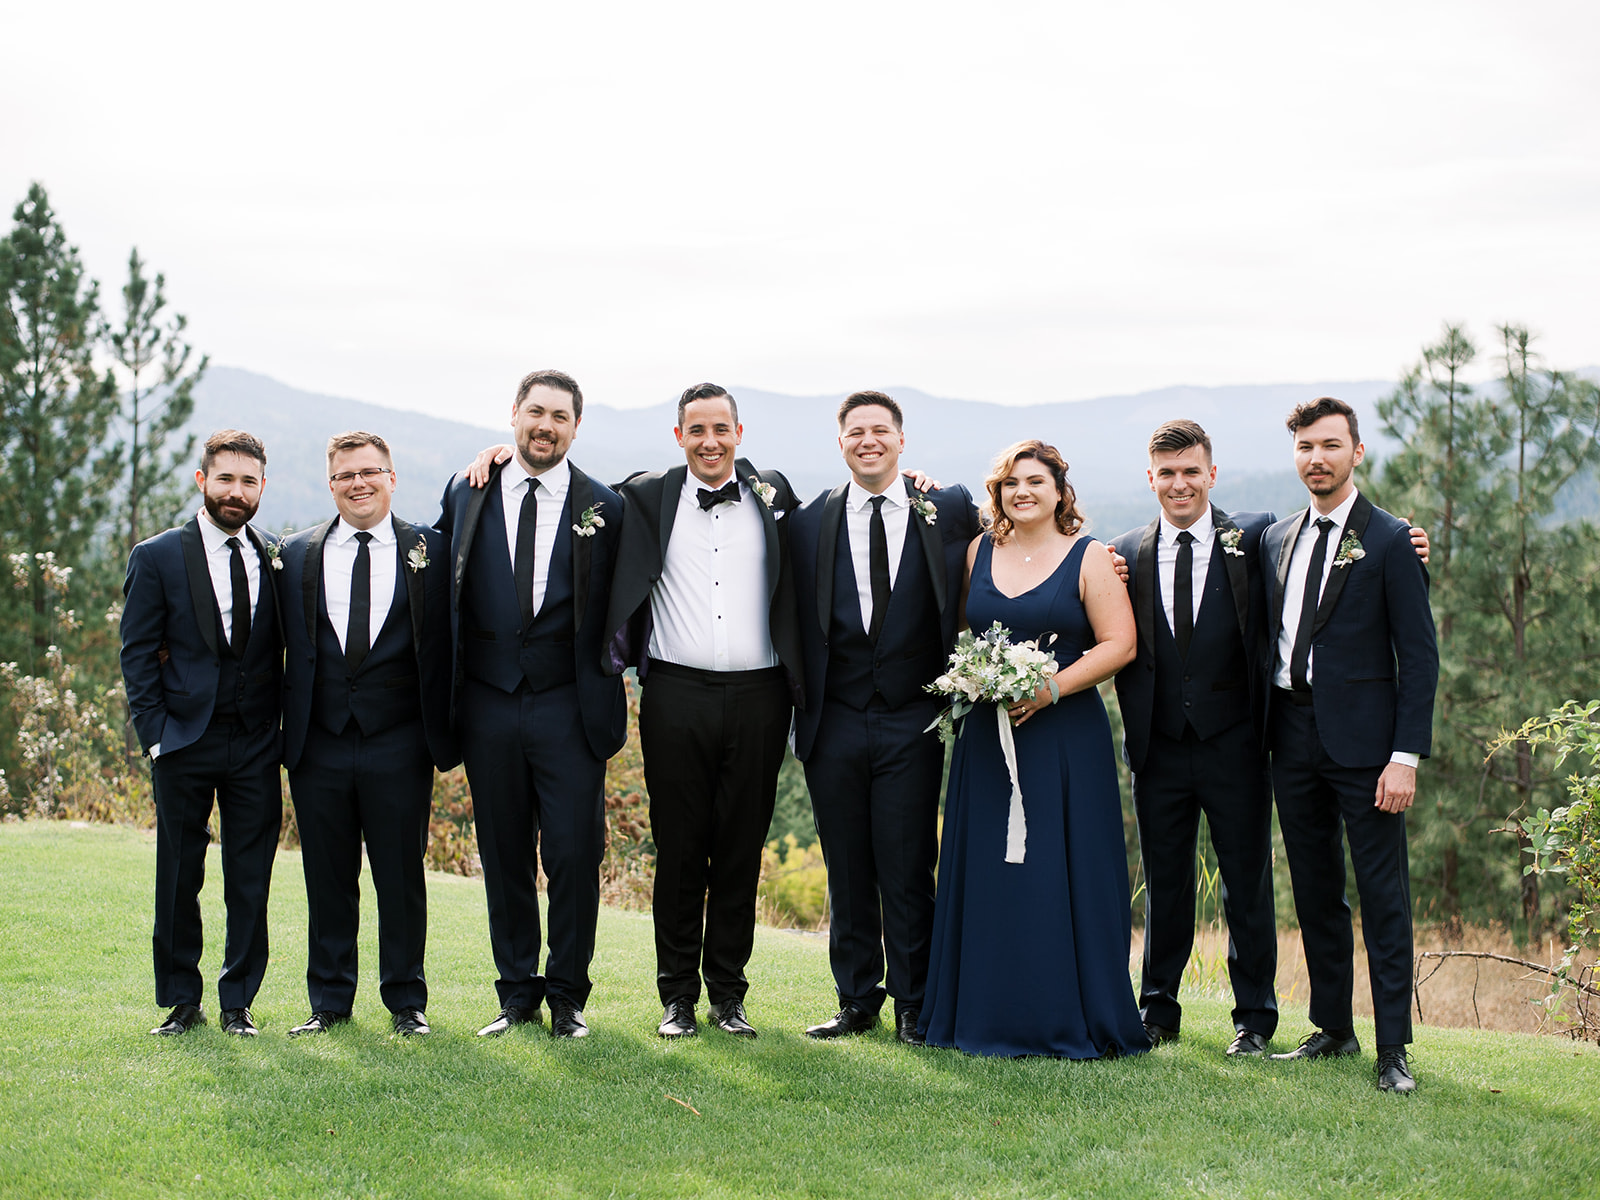 groom standing with groomsmen wearing navy blue suits